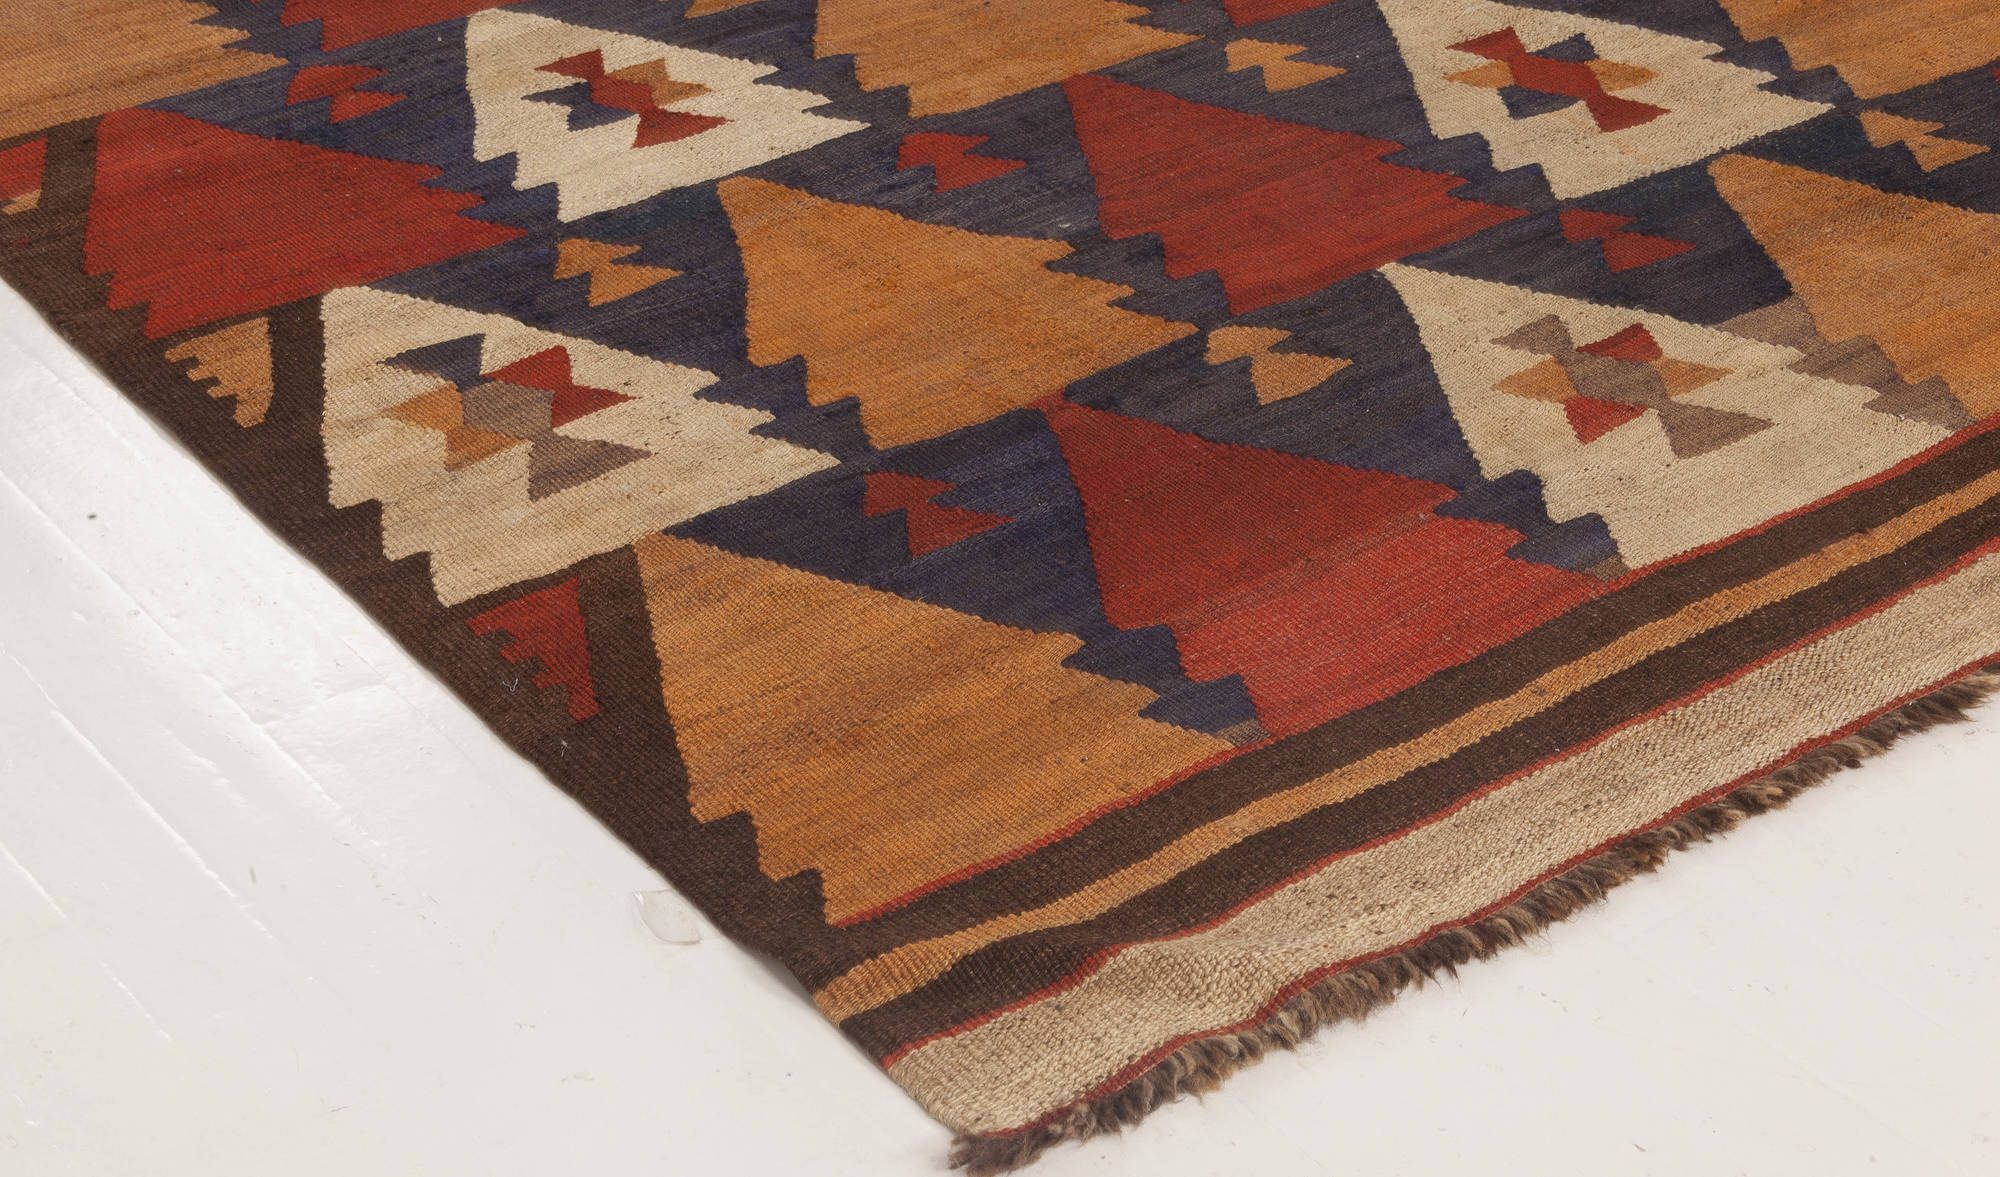 Vintage Etno Brown, Red and Yellow Handwoven Wool Kilim Rug BB6516